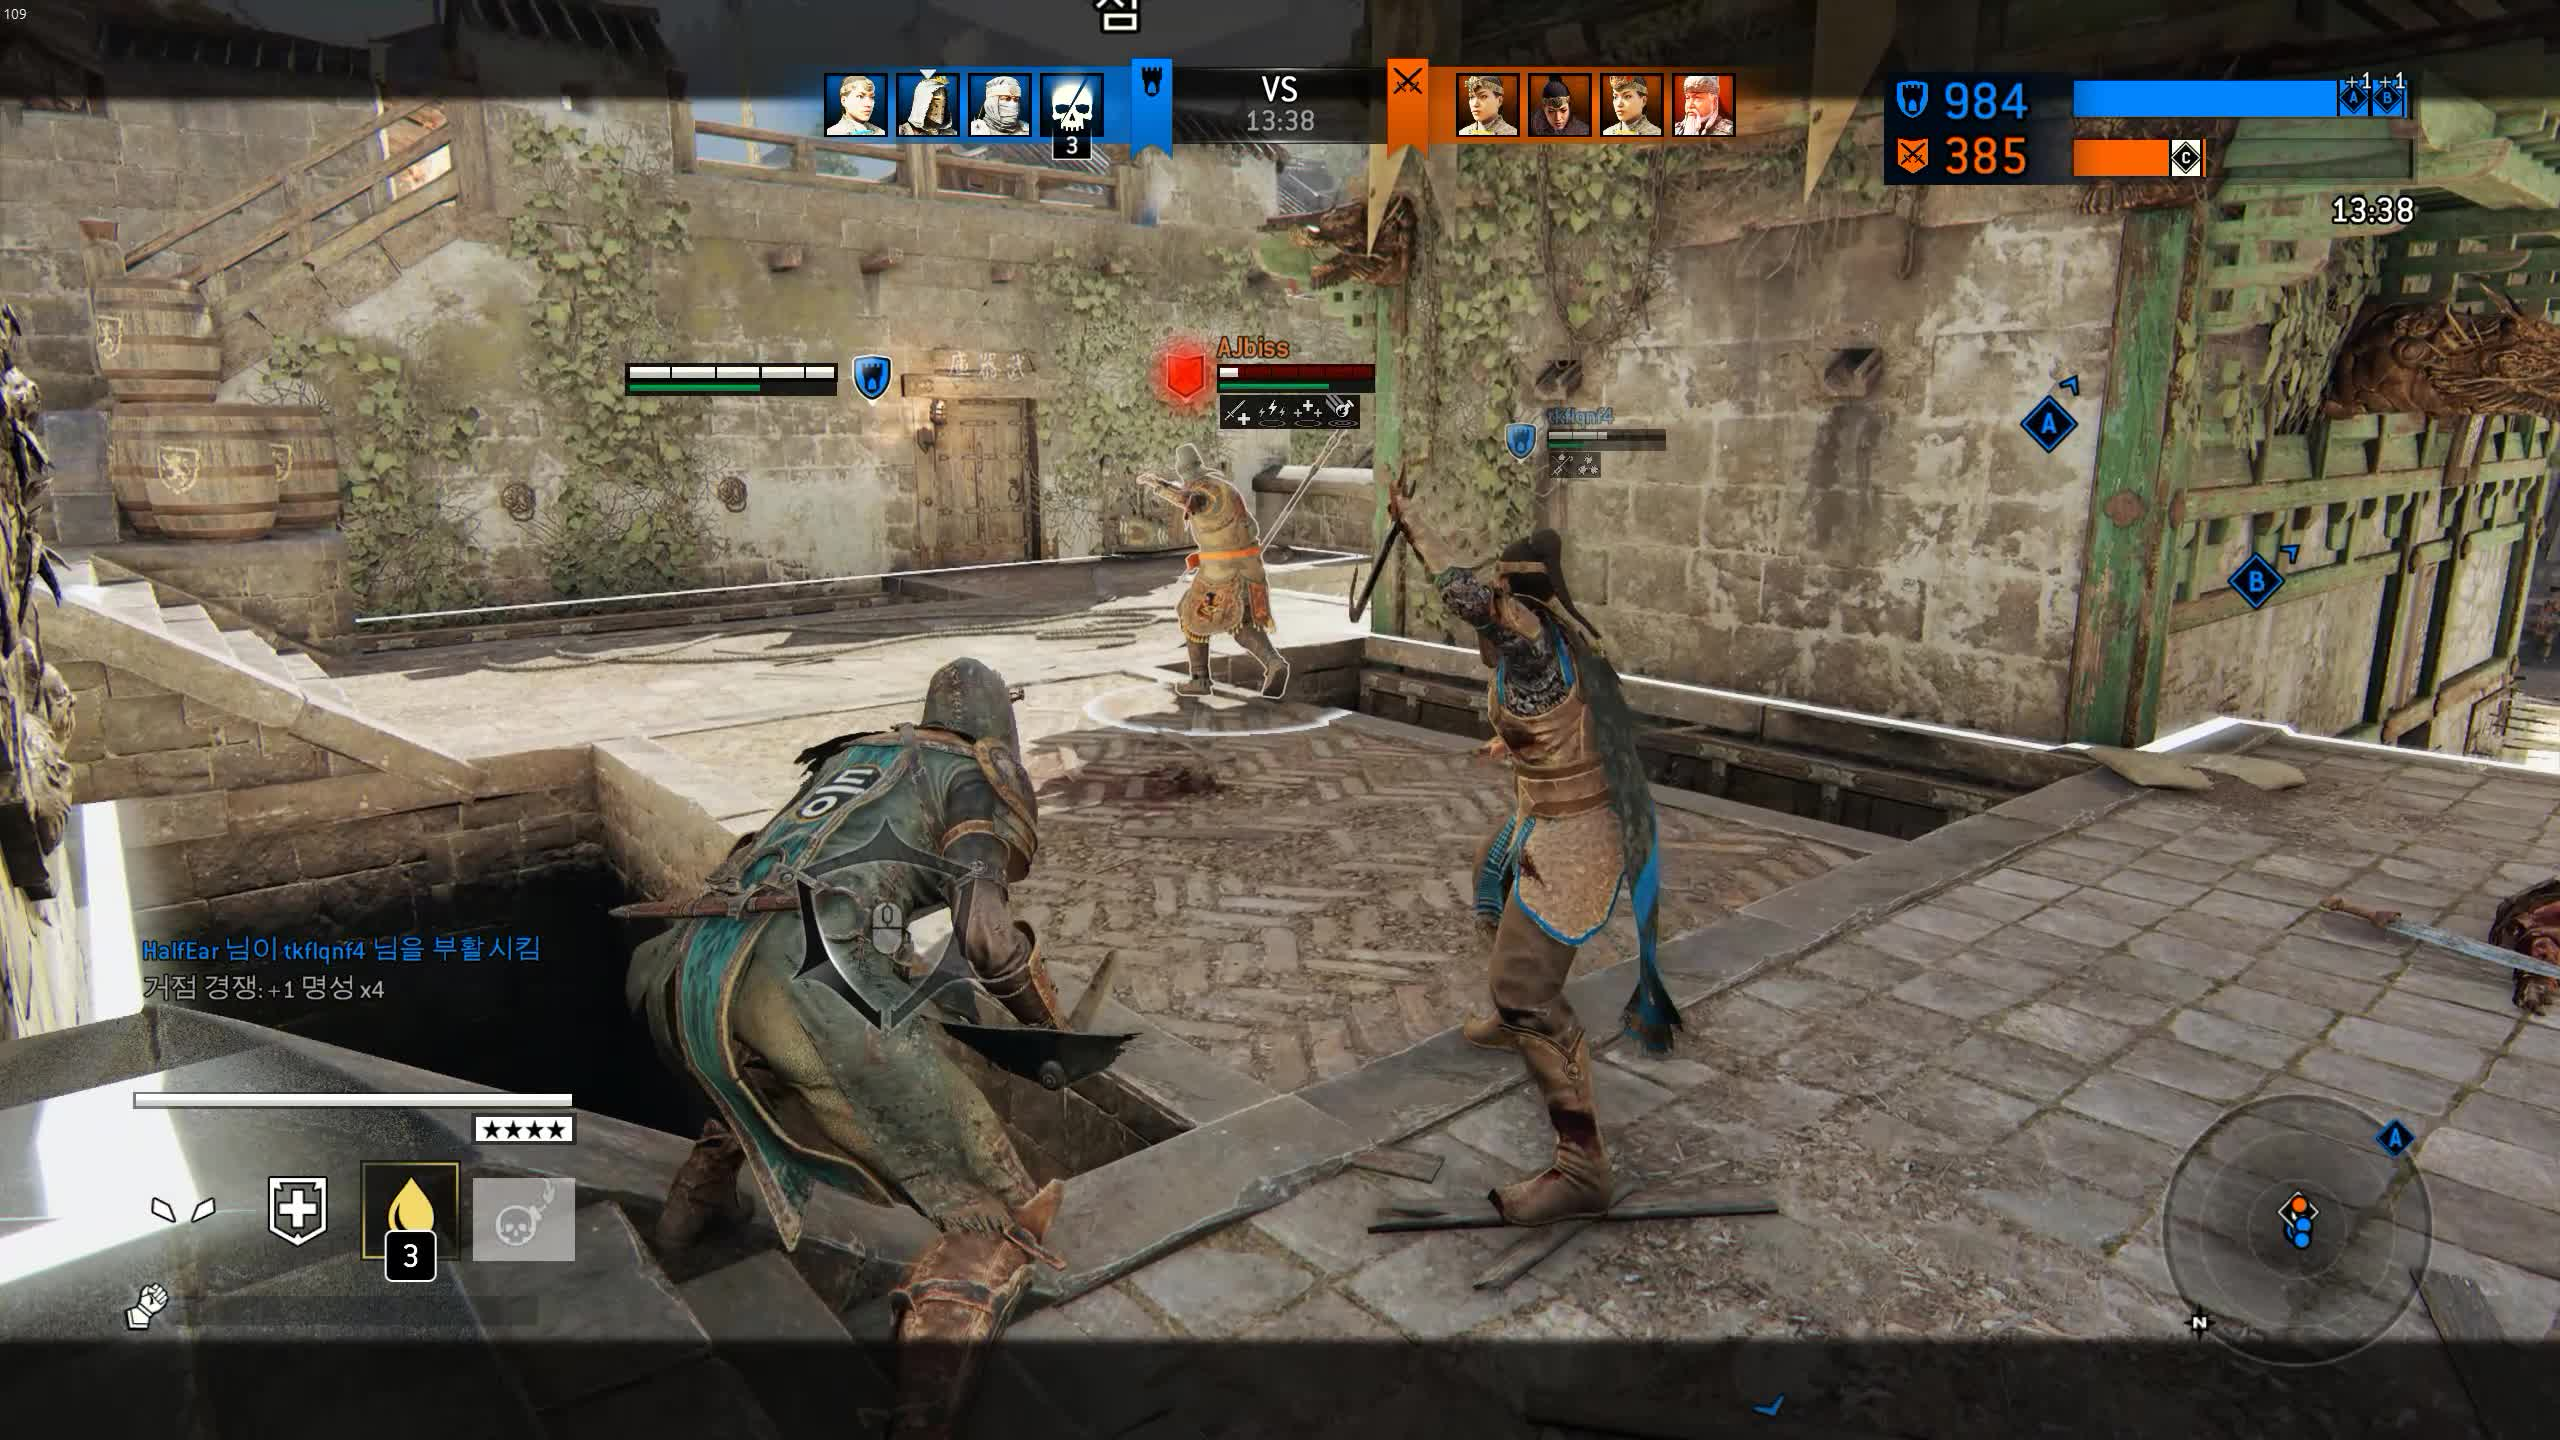 forhonor, For Honor 2019.03.30 - 22.12.54.07.DVR GIFs